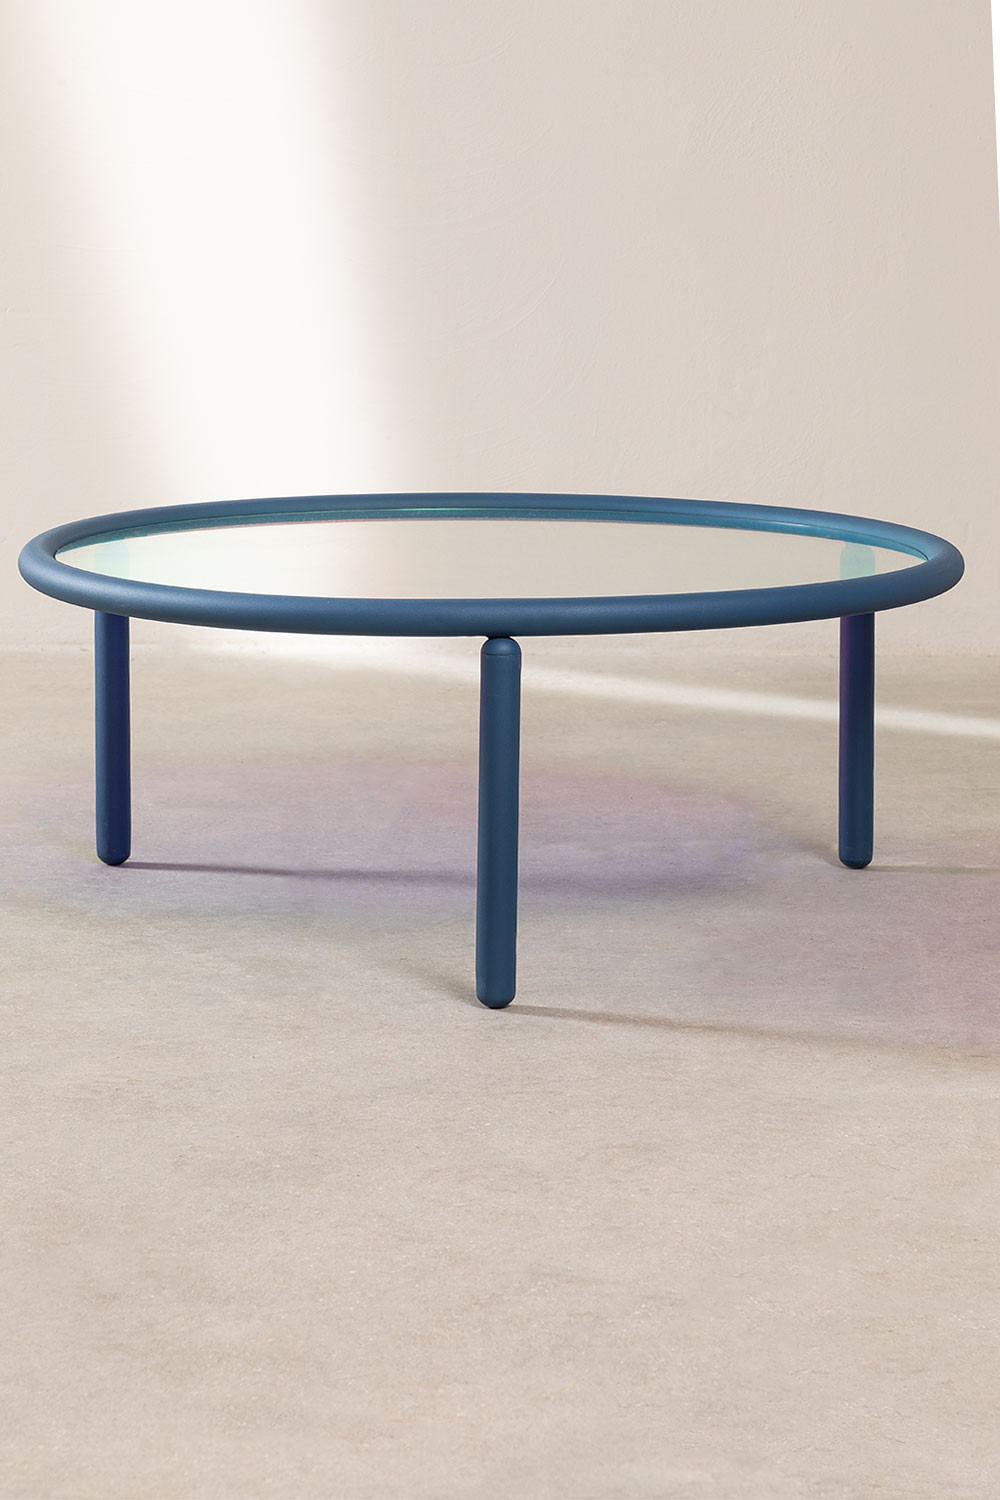 Center Table in Iridescent Glass & Steel Disk, gallery image 1